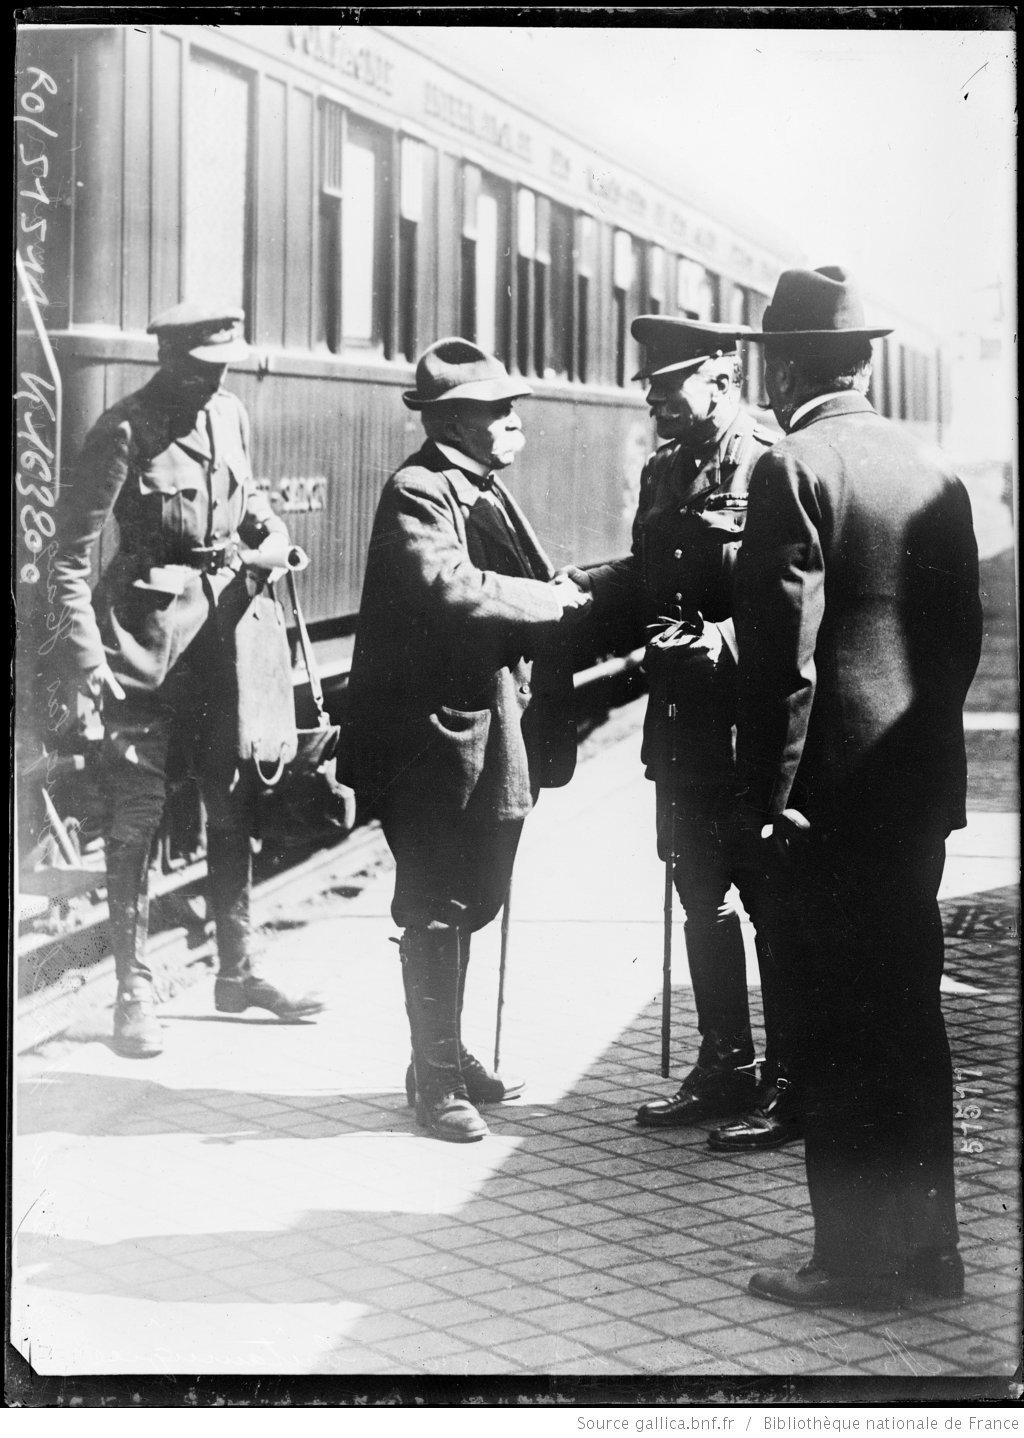 Georges Clemenceau meets General Haig during a visit at the British front., Agence Rol. Agence photographique, French National Library - Bibliothèque Nationale de France, Public Domain Mark